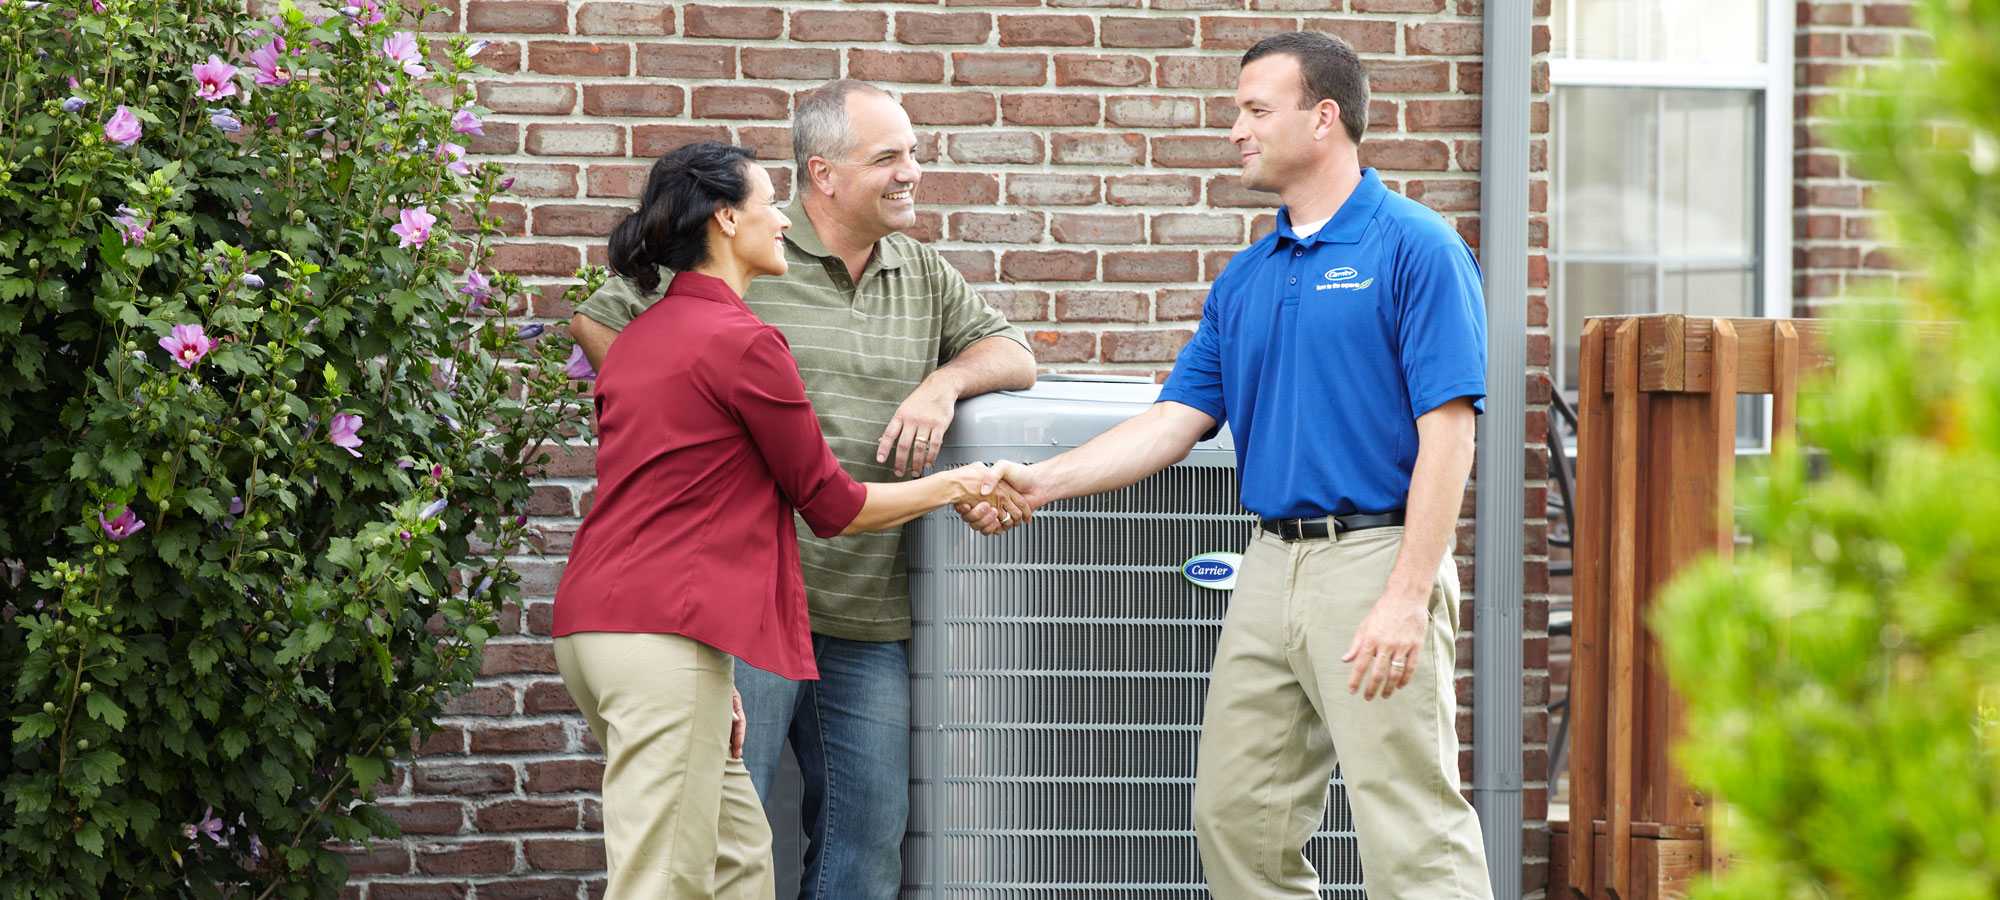 Carrier air conditioning installers